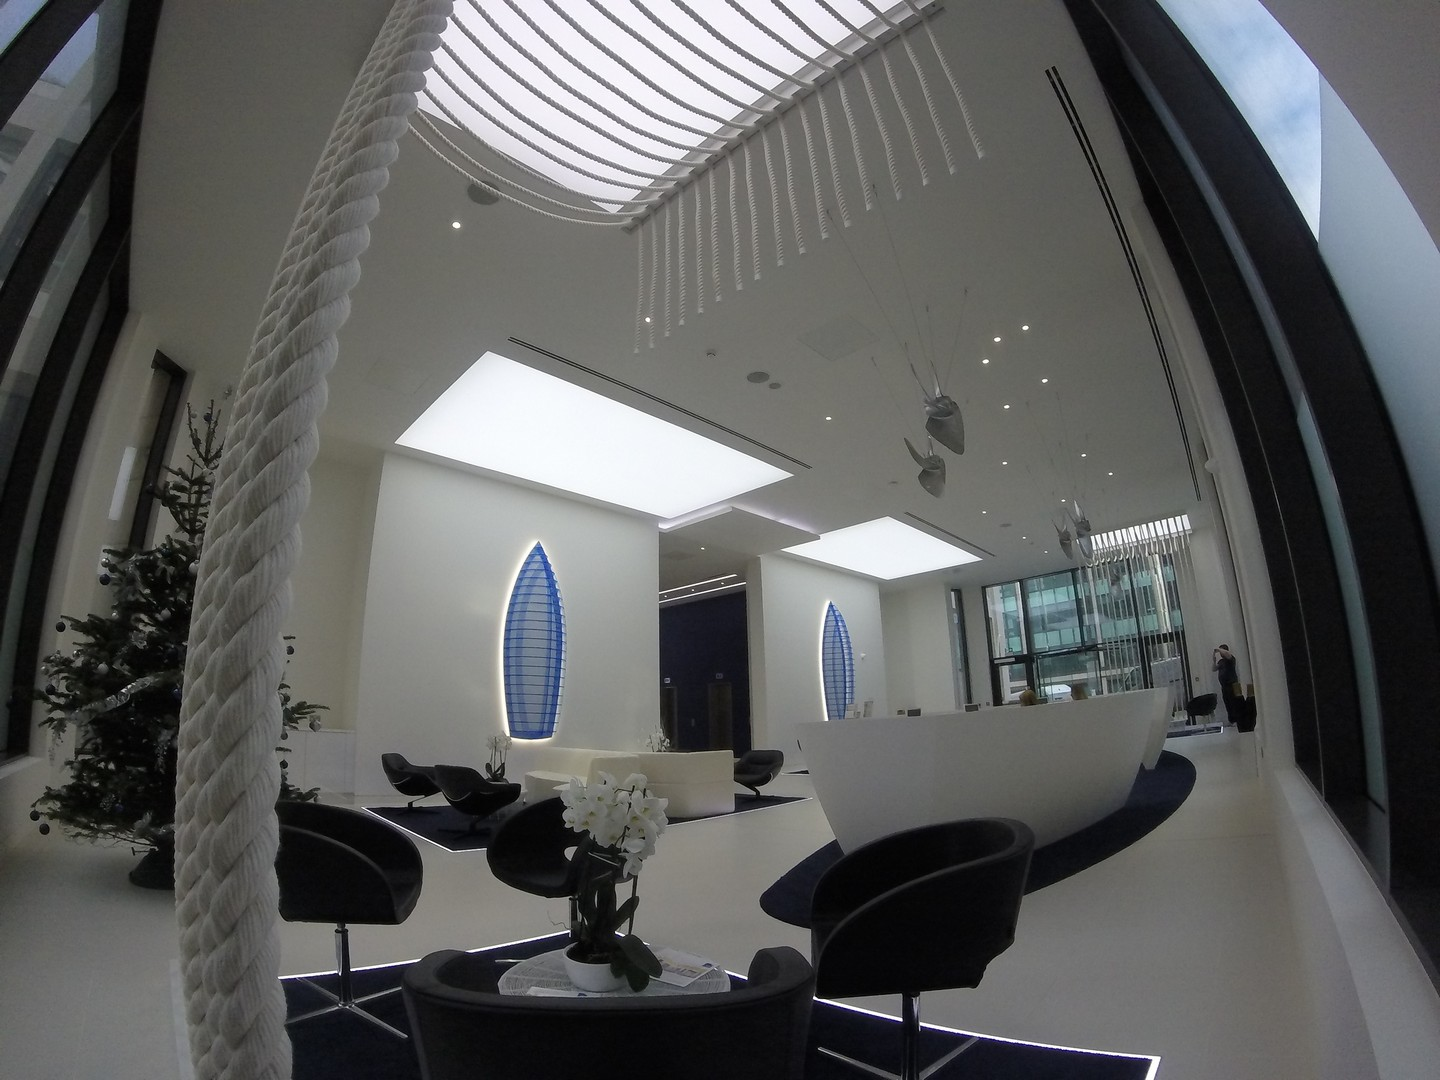 Our Stretch Ceiling Light Box into this amazing office in London.